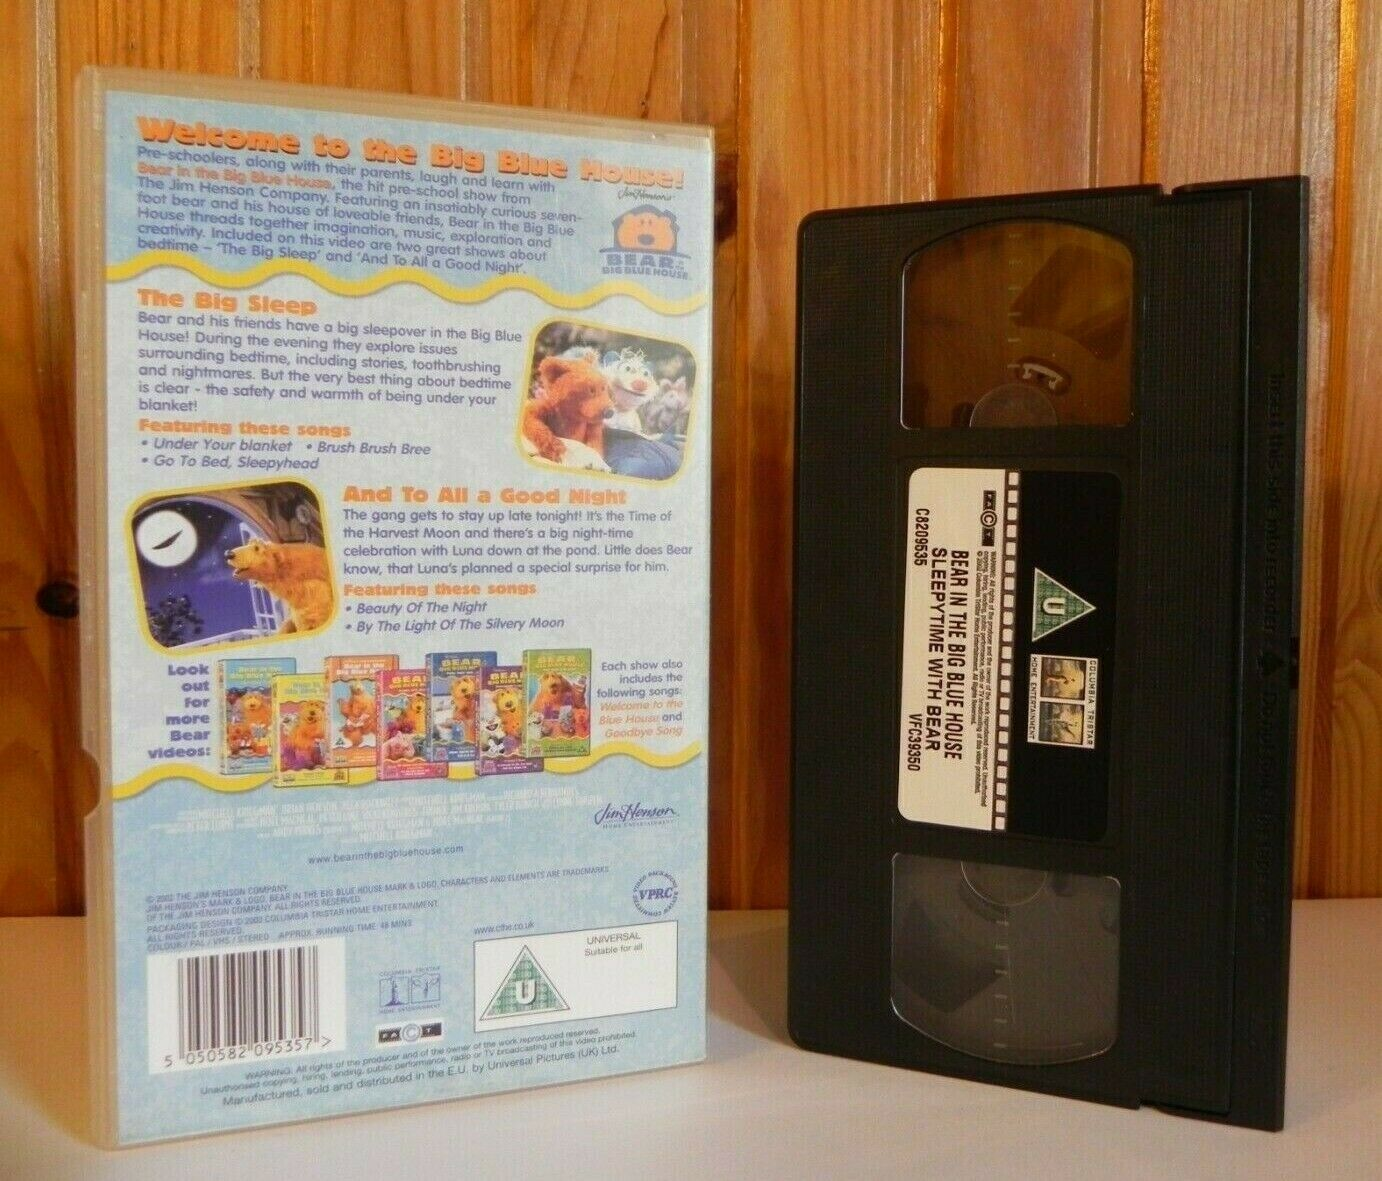 2003, Animation, Bear, Bear In The Big Blue House, Big, Blue, Children's & Family, Educational, In, Kids, Pal, Preschool, Sleepy, The, Time, U, VHS